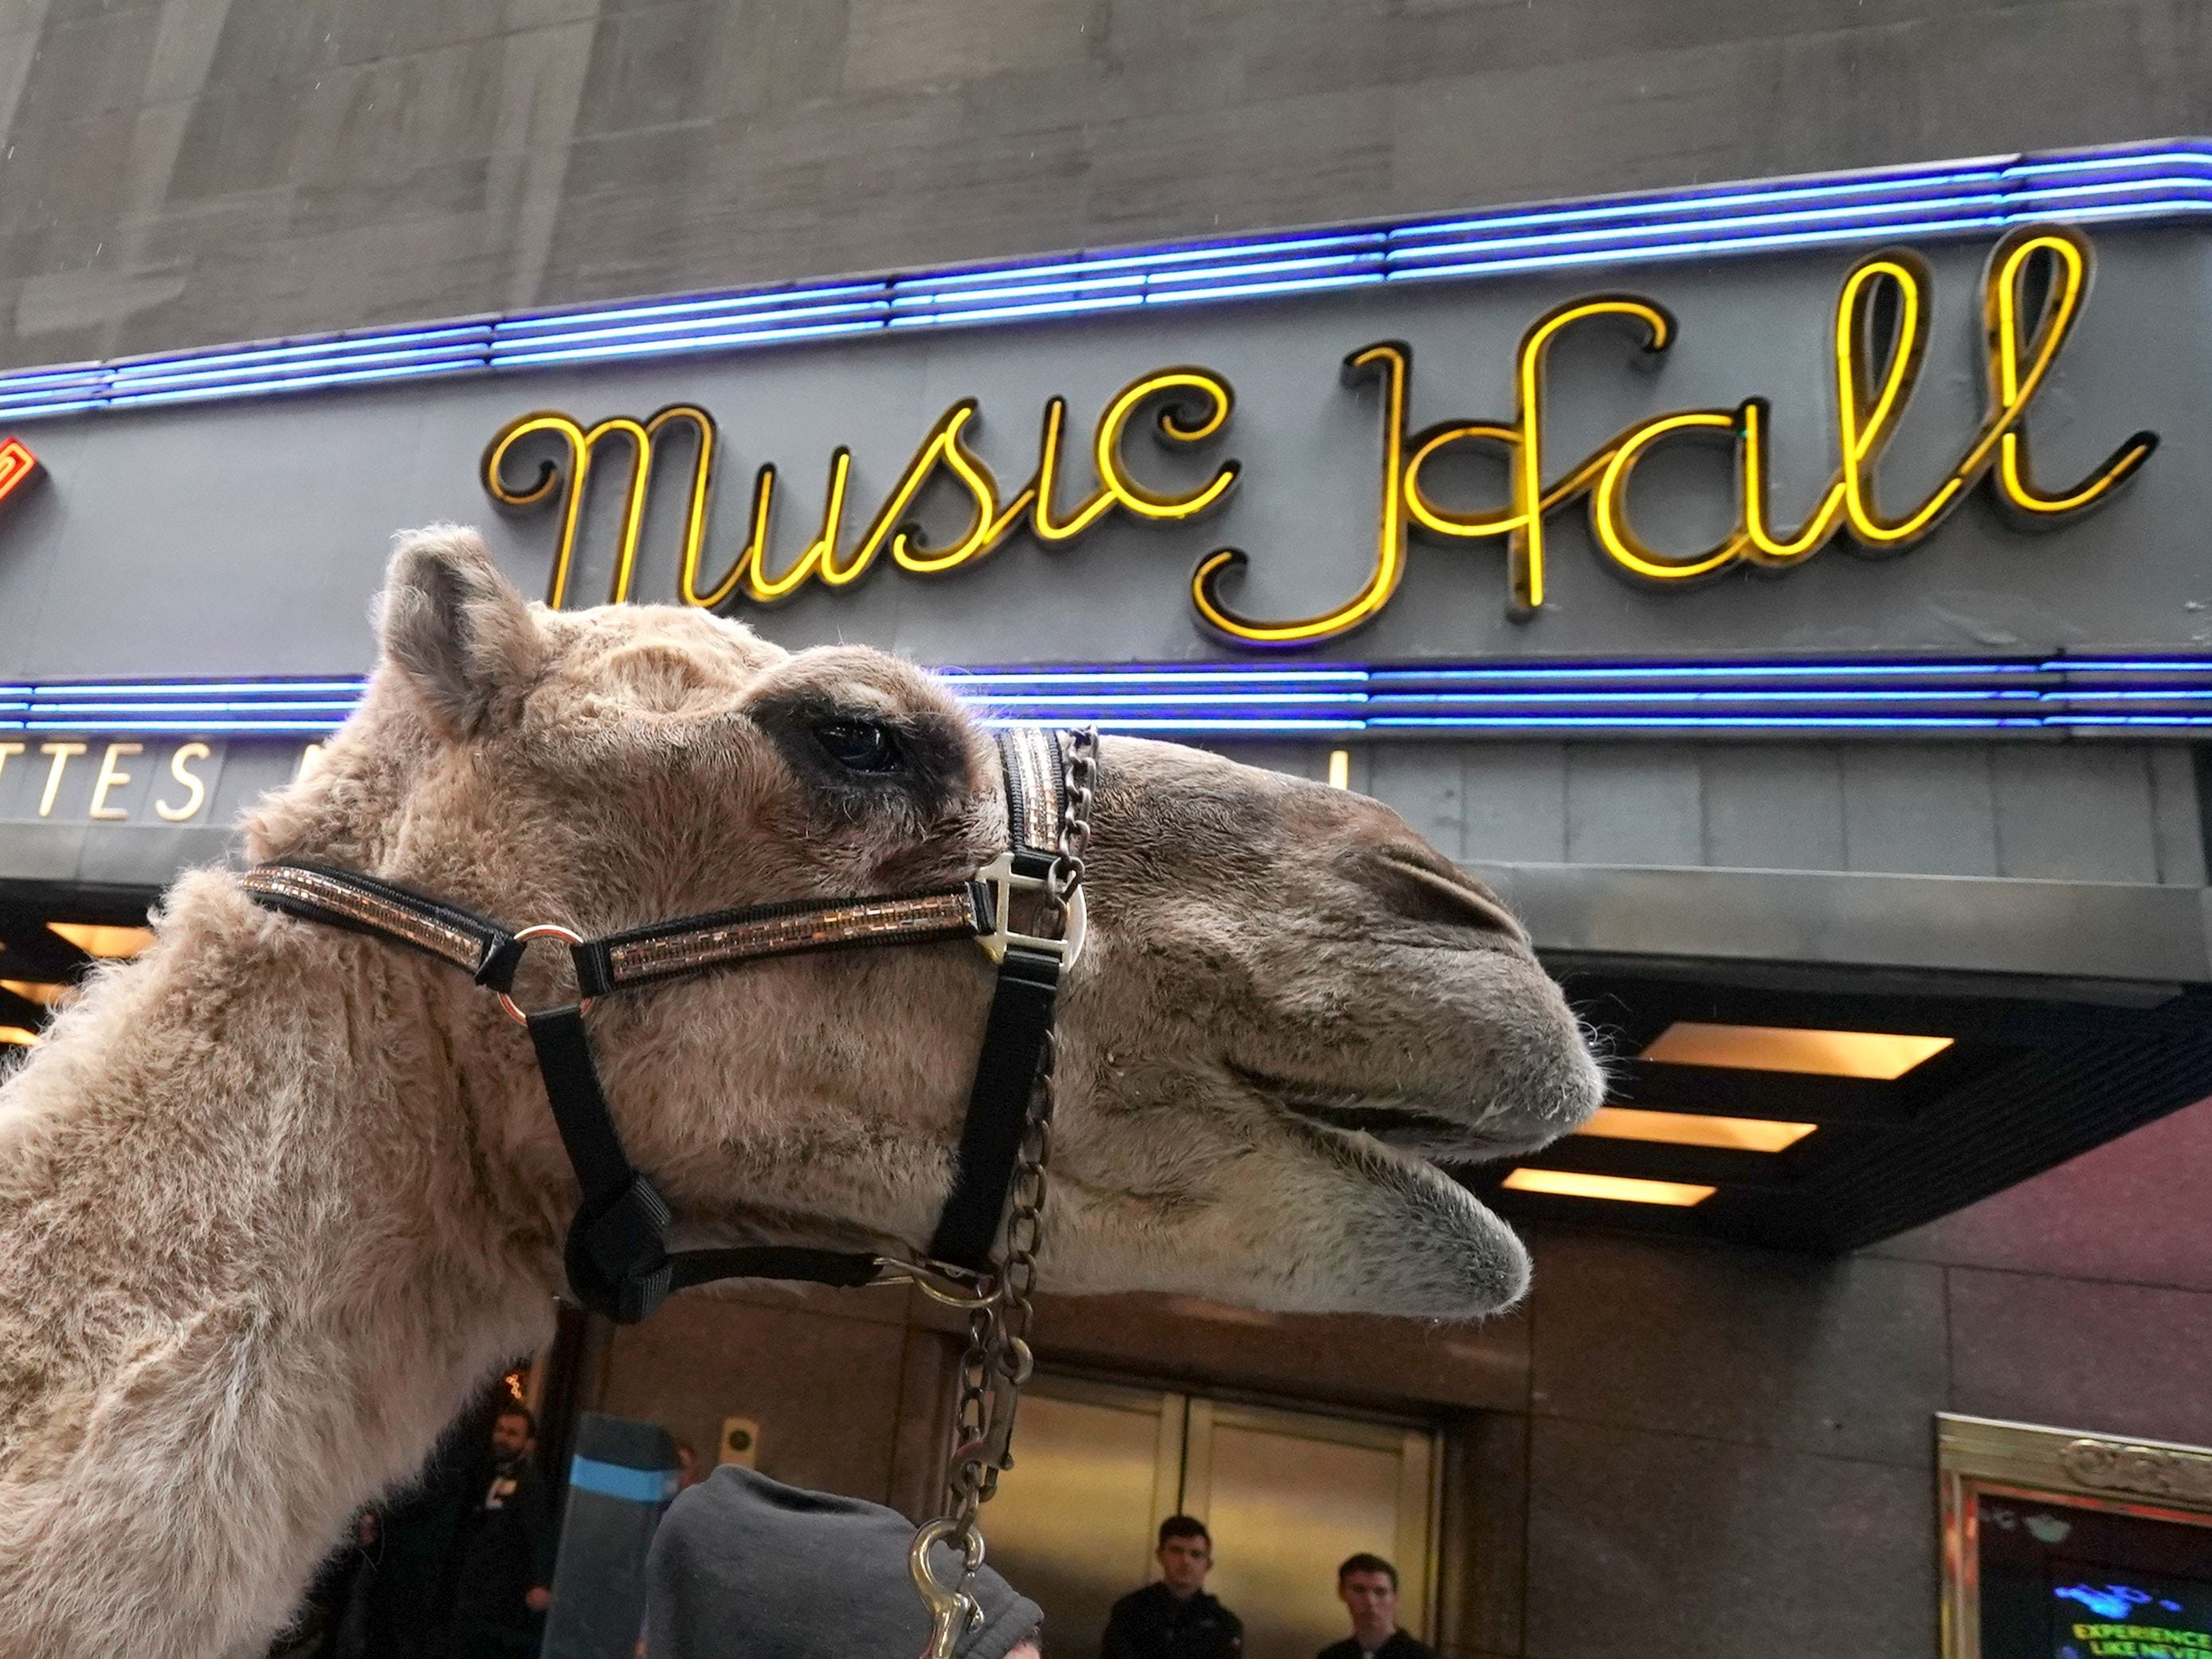 Camels are escorted down the street as the  Radio City Rockettes  welcome the camels, sheep and donkey back to Radio City Music Hall November 5, 2018 for their starring role in the Living Nativity scene in the 2018 production of the Christmas Spectacular Starring the Radio City Rockettes. - The Christmas Spectacular starring the Radio City Rockettes, presented by Chase, will run from November 9  January 1, 2019. (Photo by TIMOTHY A. CLARY / AFP)TIMOTHY A. CLARY/AFP/Getty Images